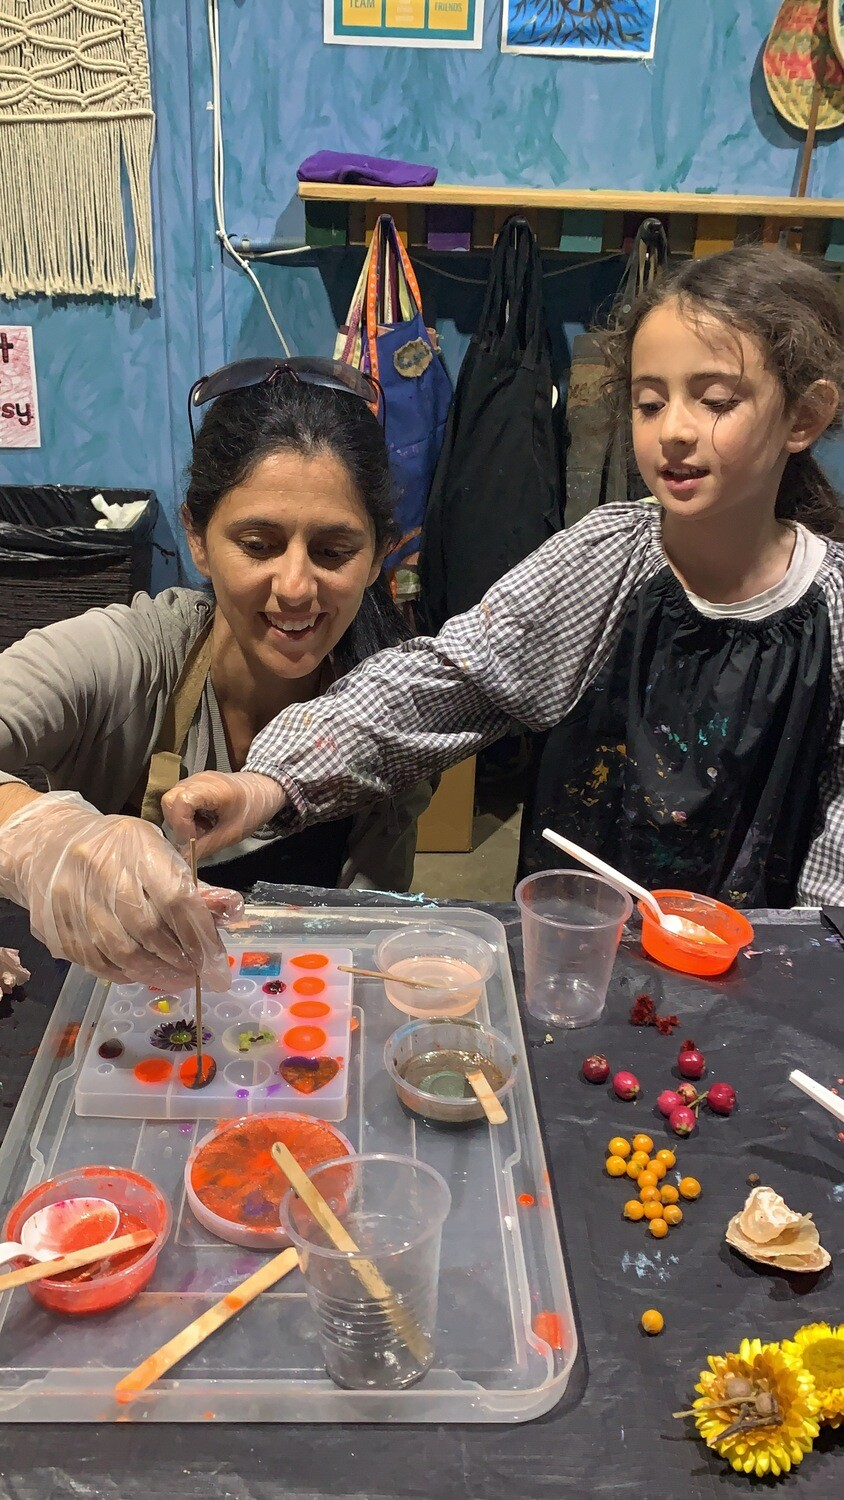 Parent & Child Resin jewellery workshop - Sunday 6 Sept, 11am - 12.30pm